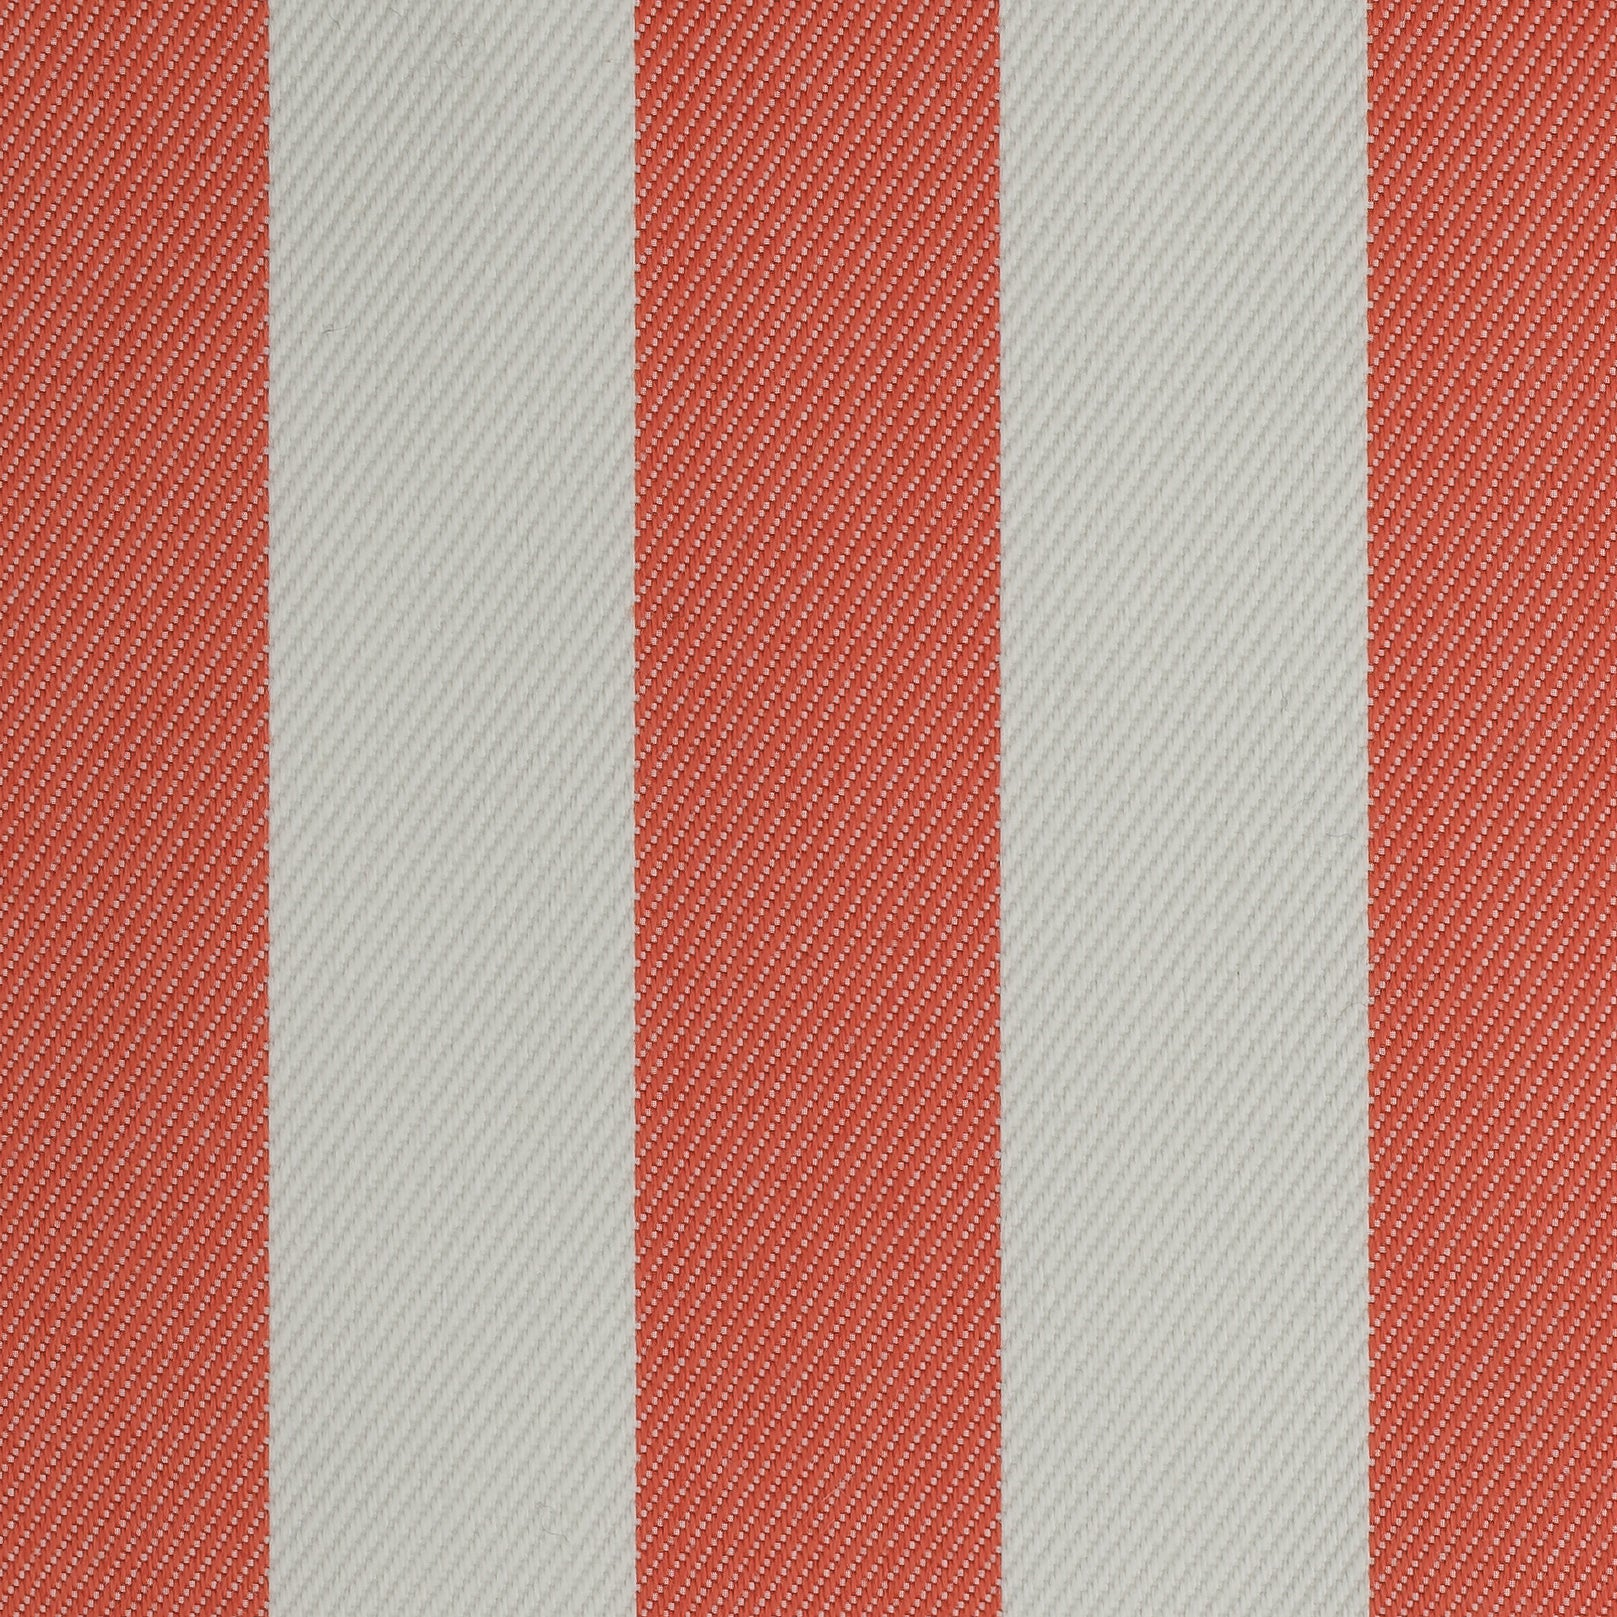 Sunset Stripes Orange